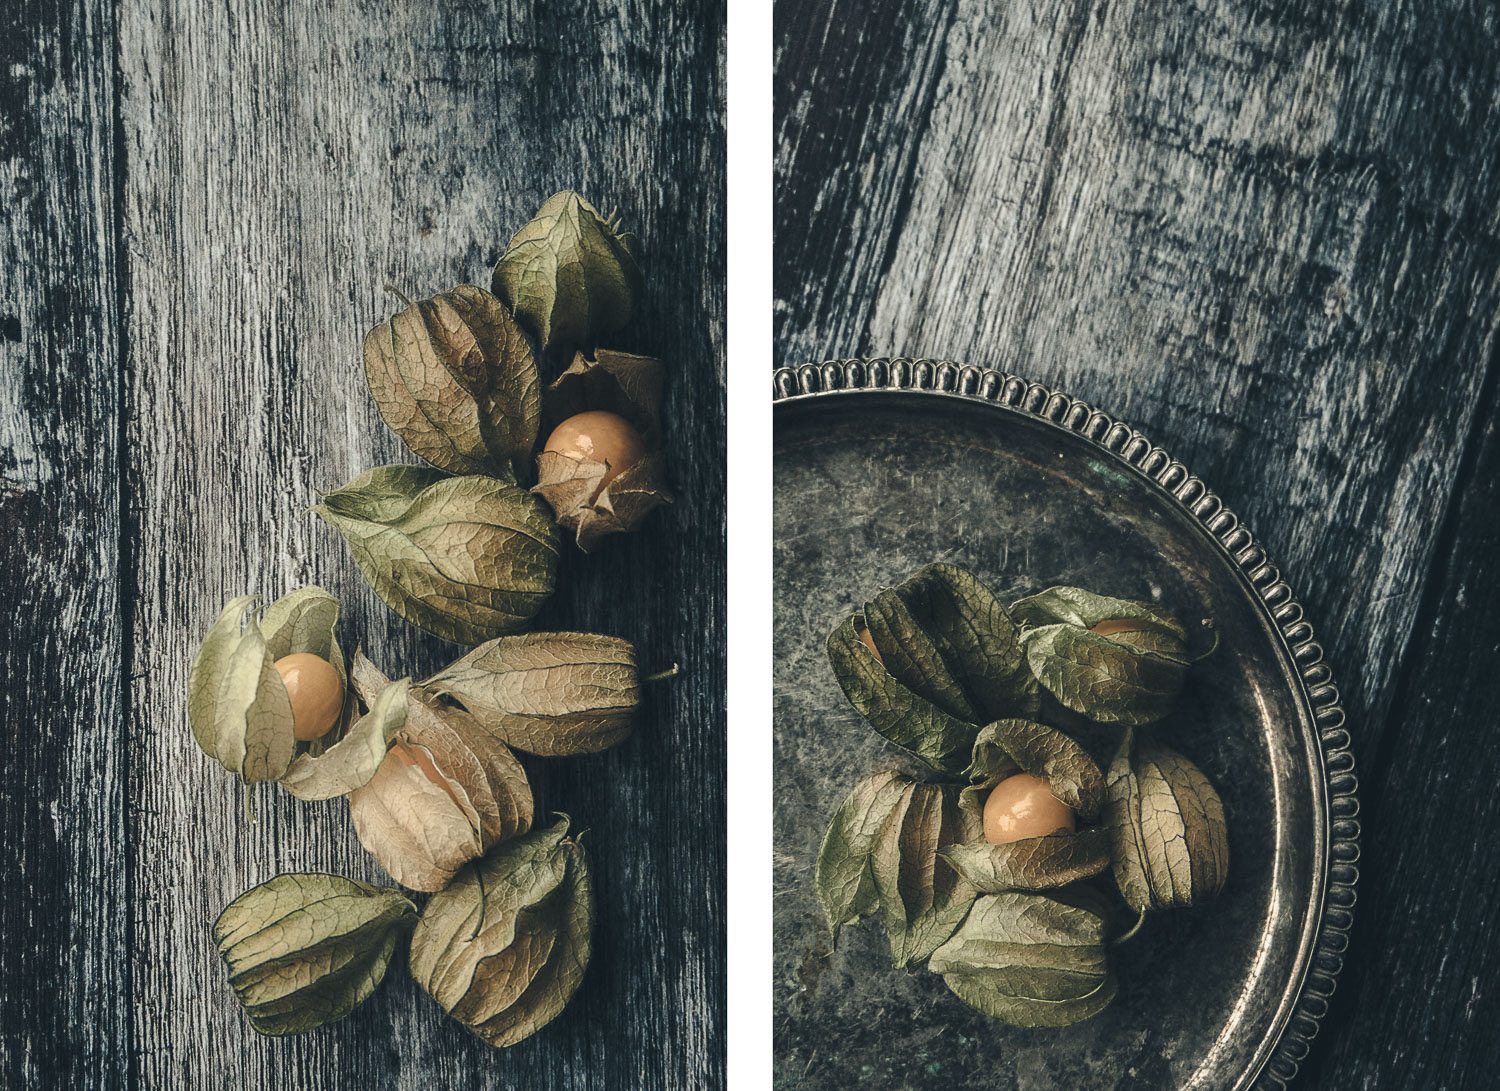 Physalis color duo - How to Create Fine Art Images from the Mundane